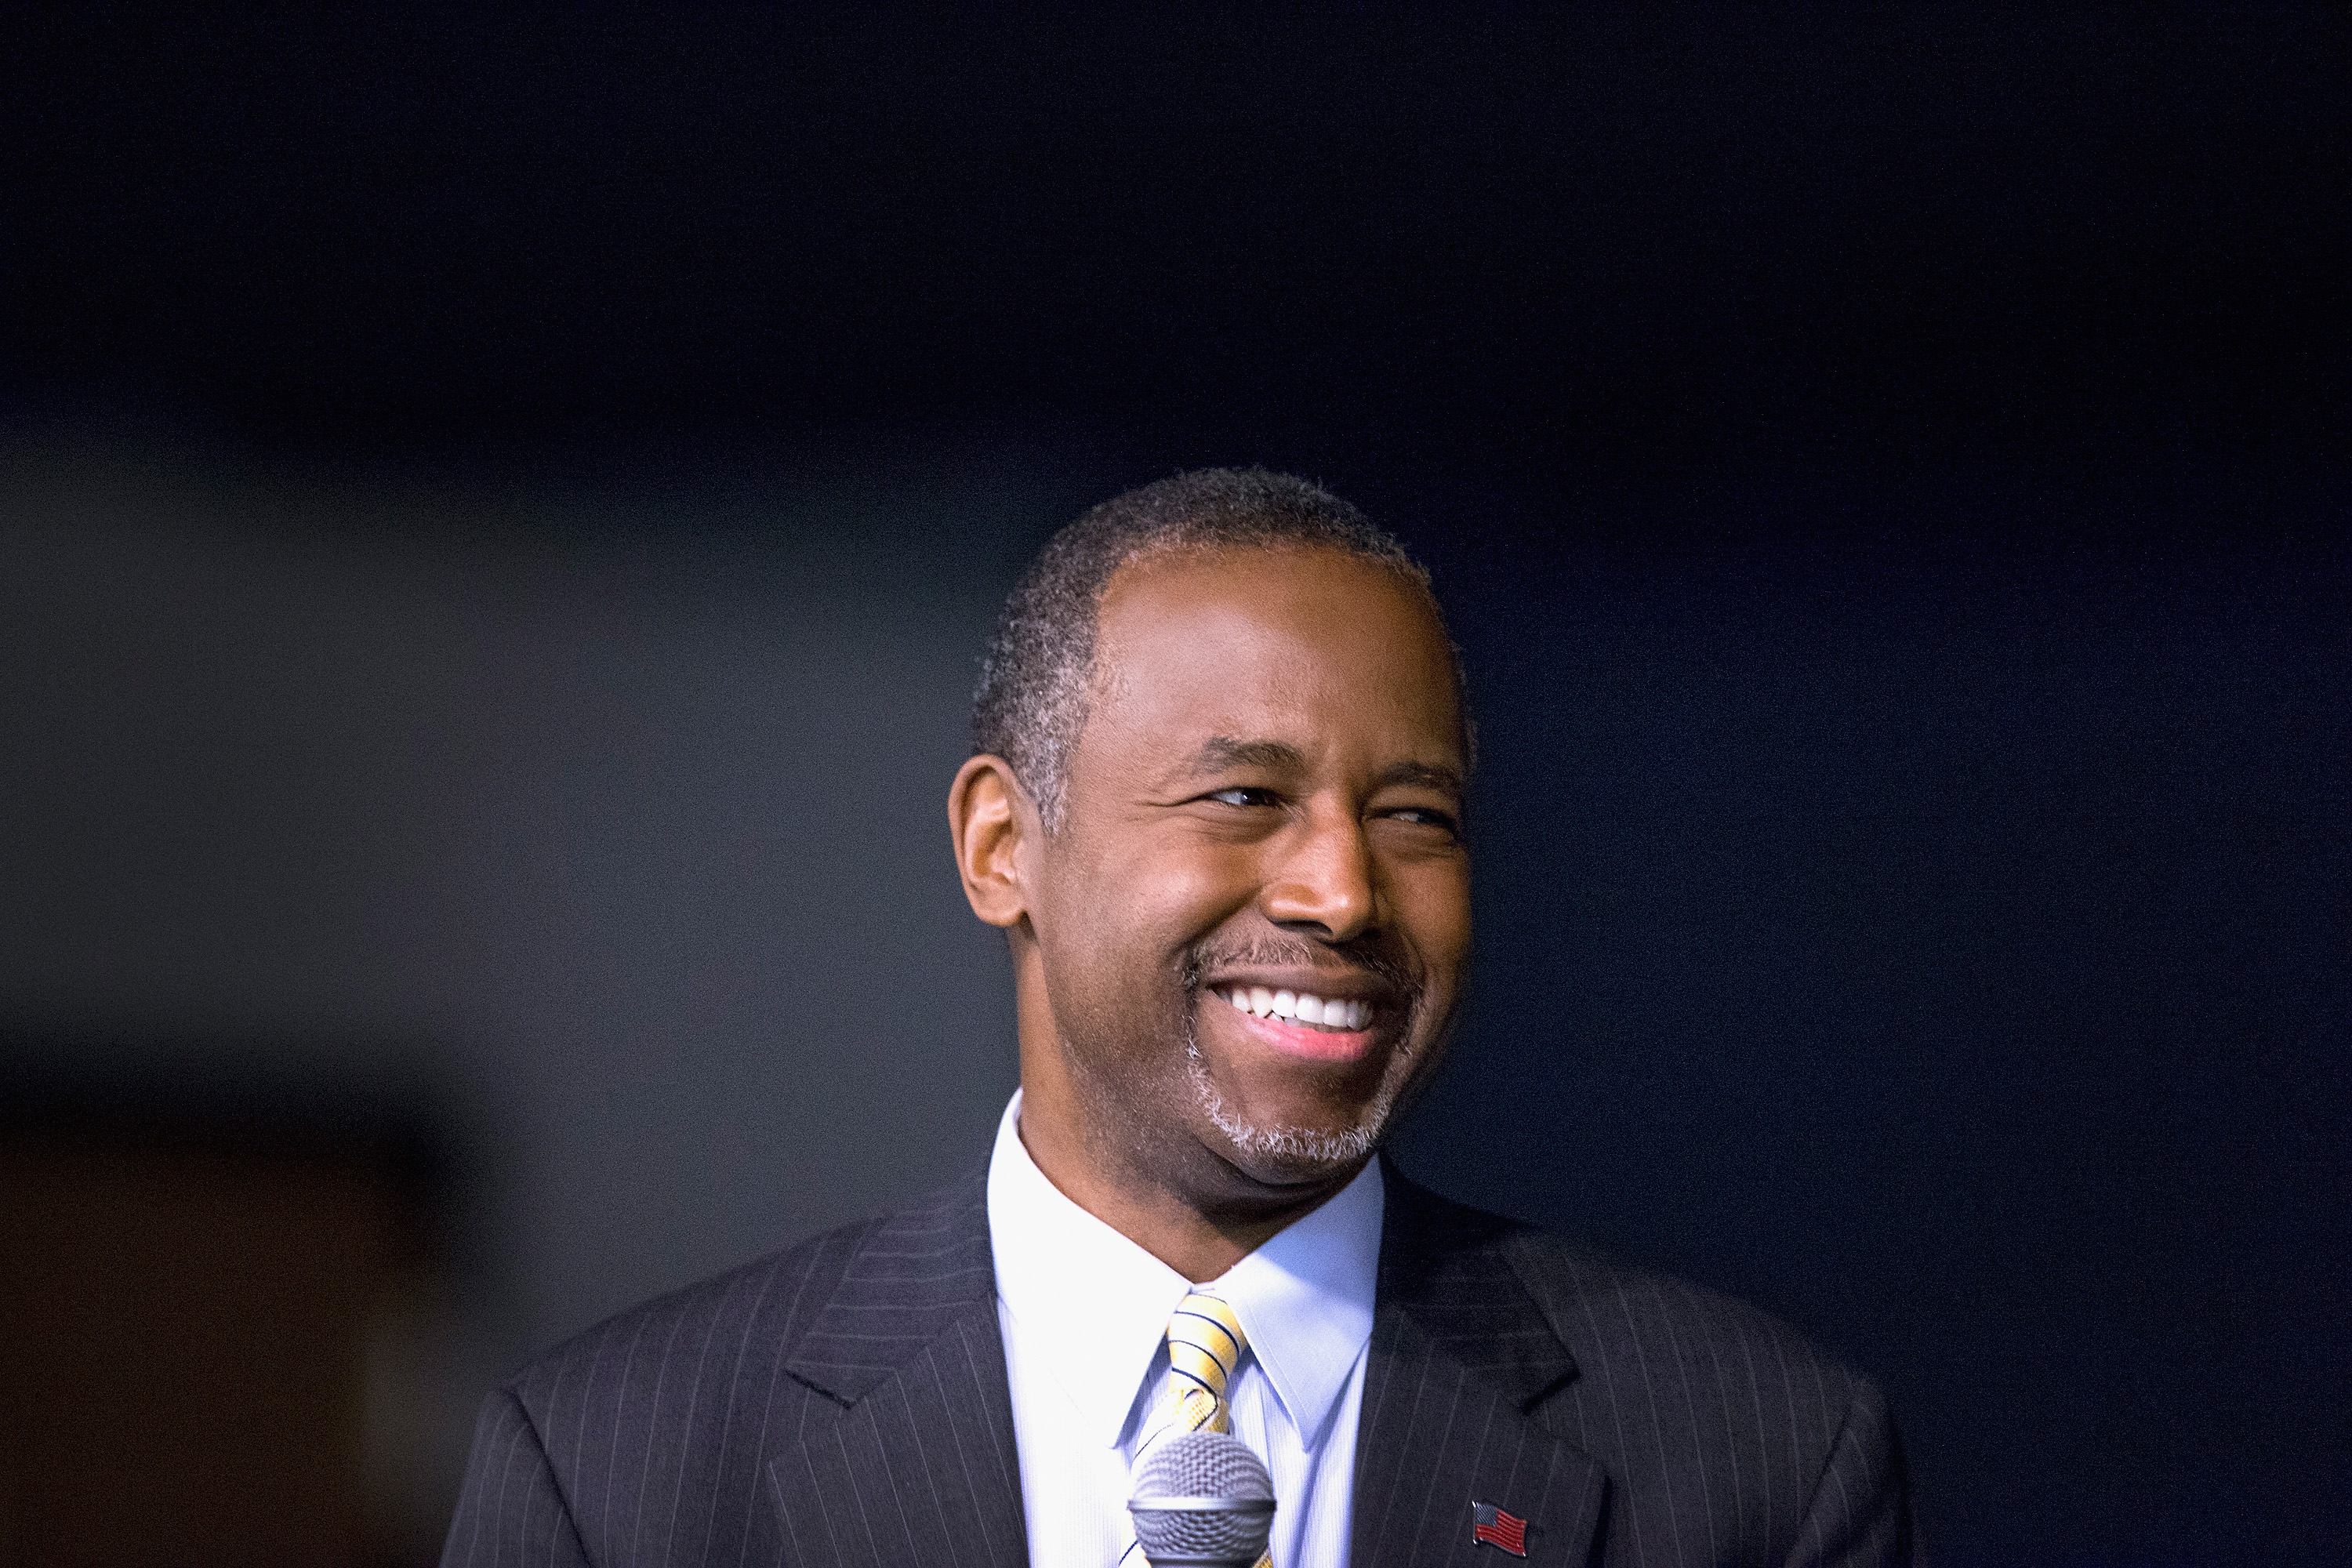 Republican presidential candidate Ben Carson speaks to guests at a barbeque hosted by Jeff Kauffman in Wilton, Iowa on Nov. 22, 2015.